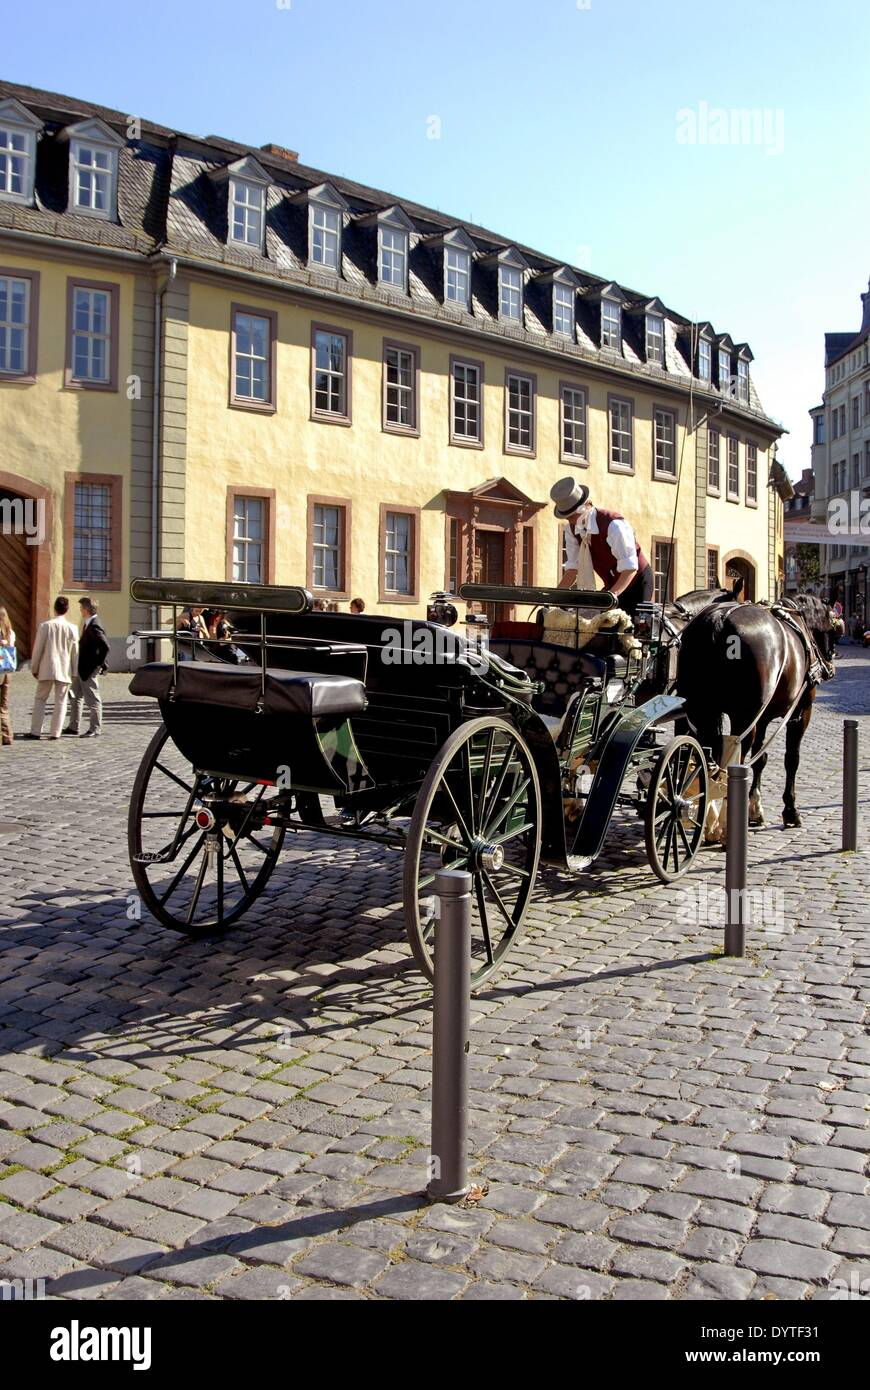 Coachman before the Goethe house in Weimar, 2006 - Stock Image